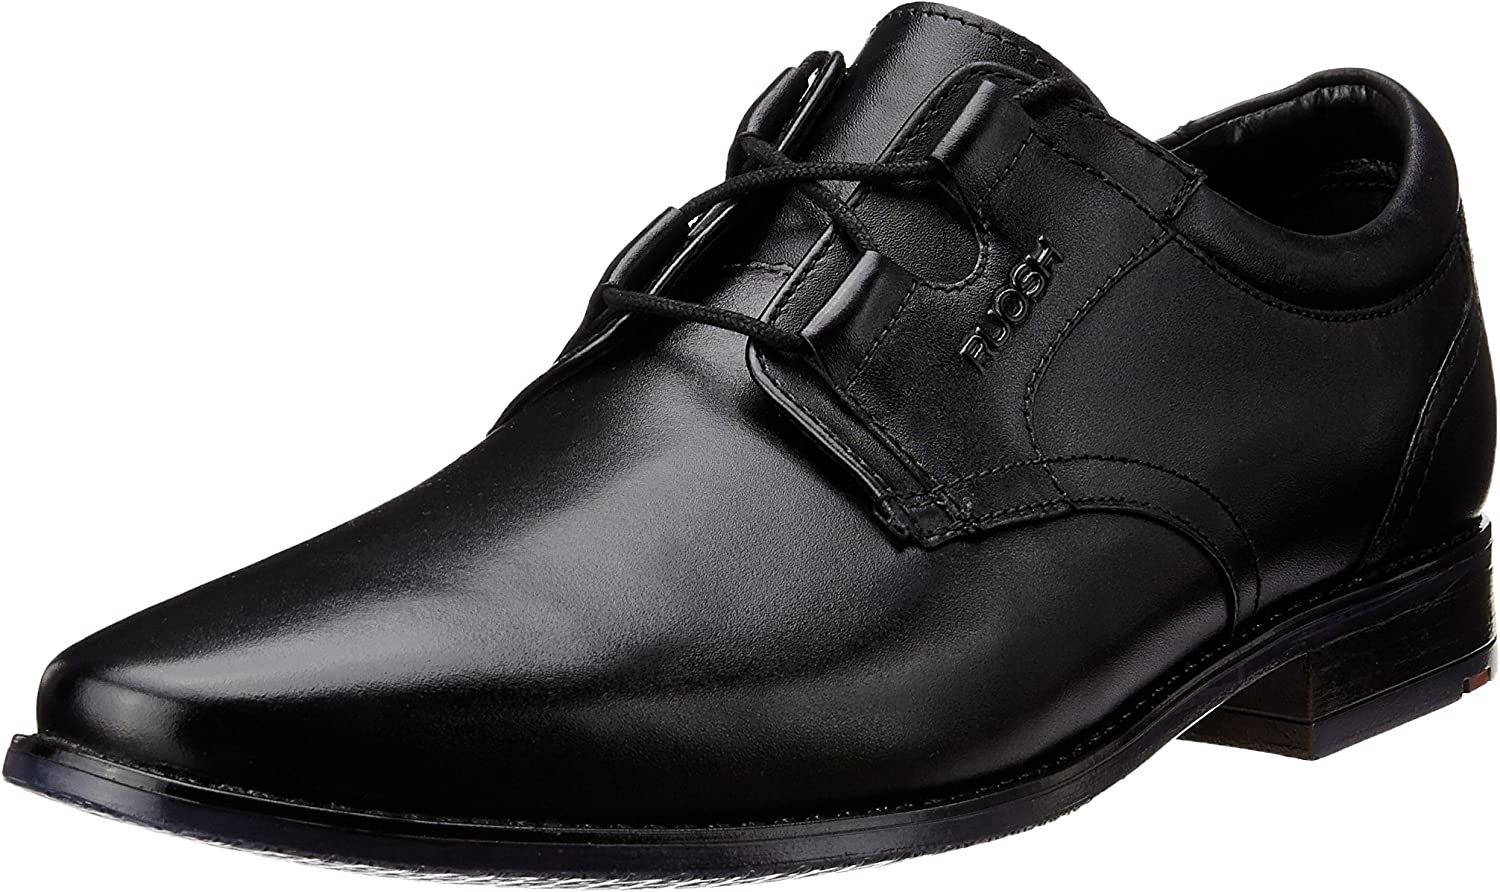 Ruosh Men's Black Leather Formal shoes - 7 UK India (40 EU)